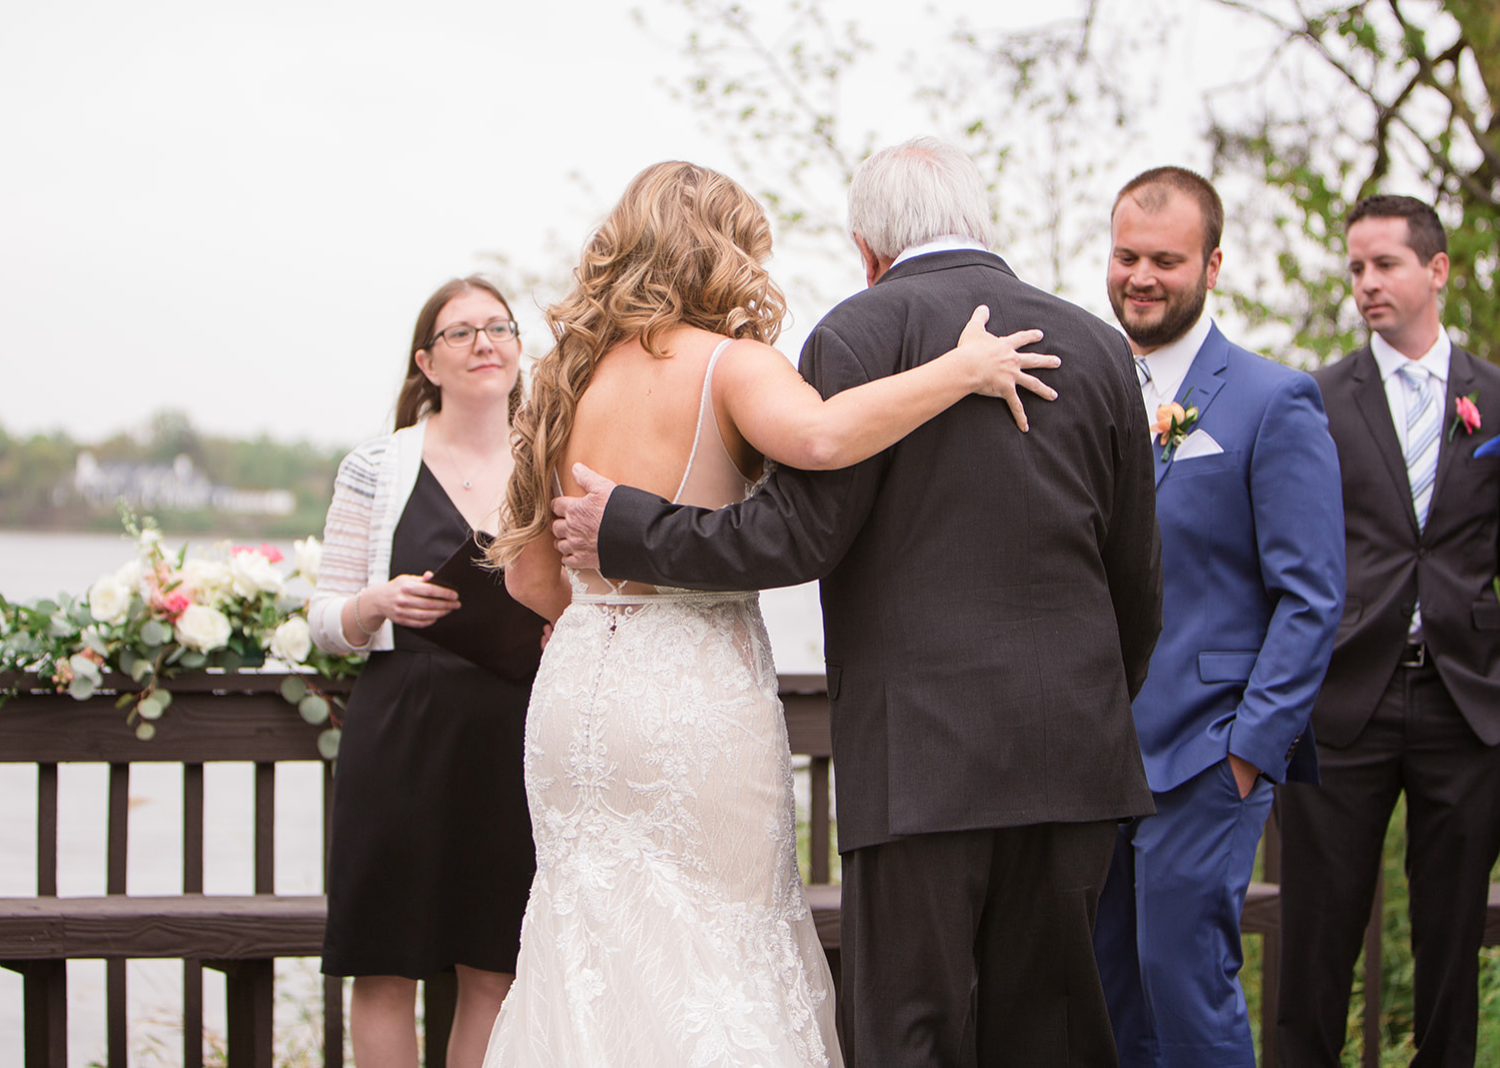 father giving bride away to the groom